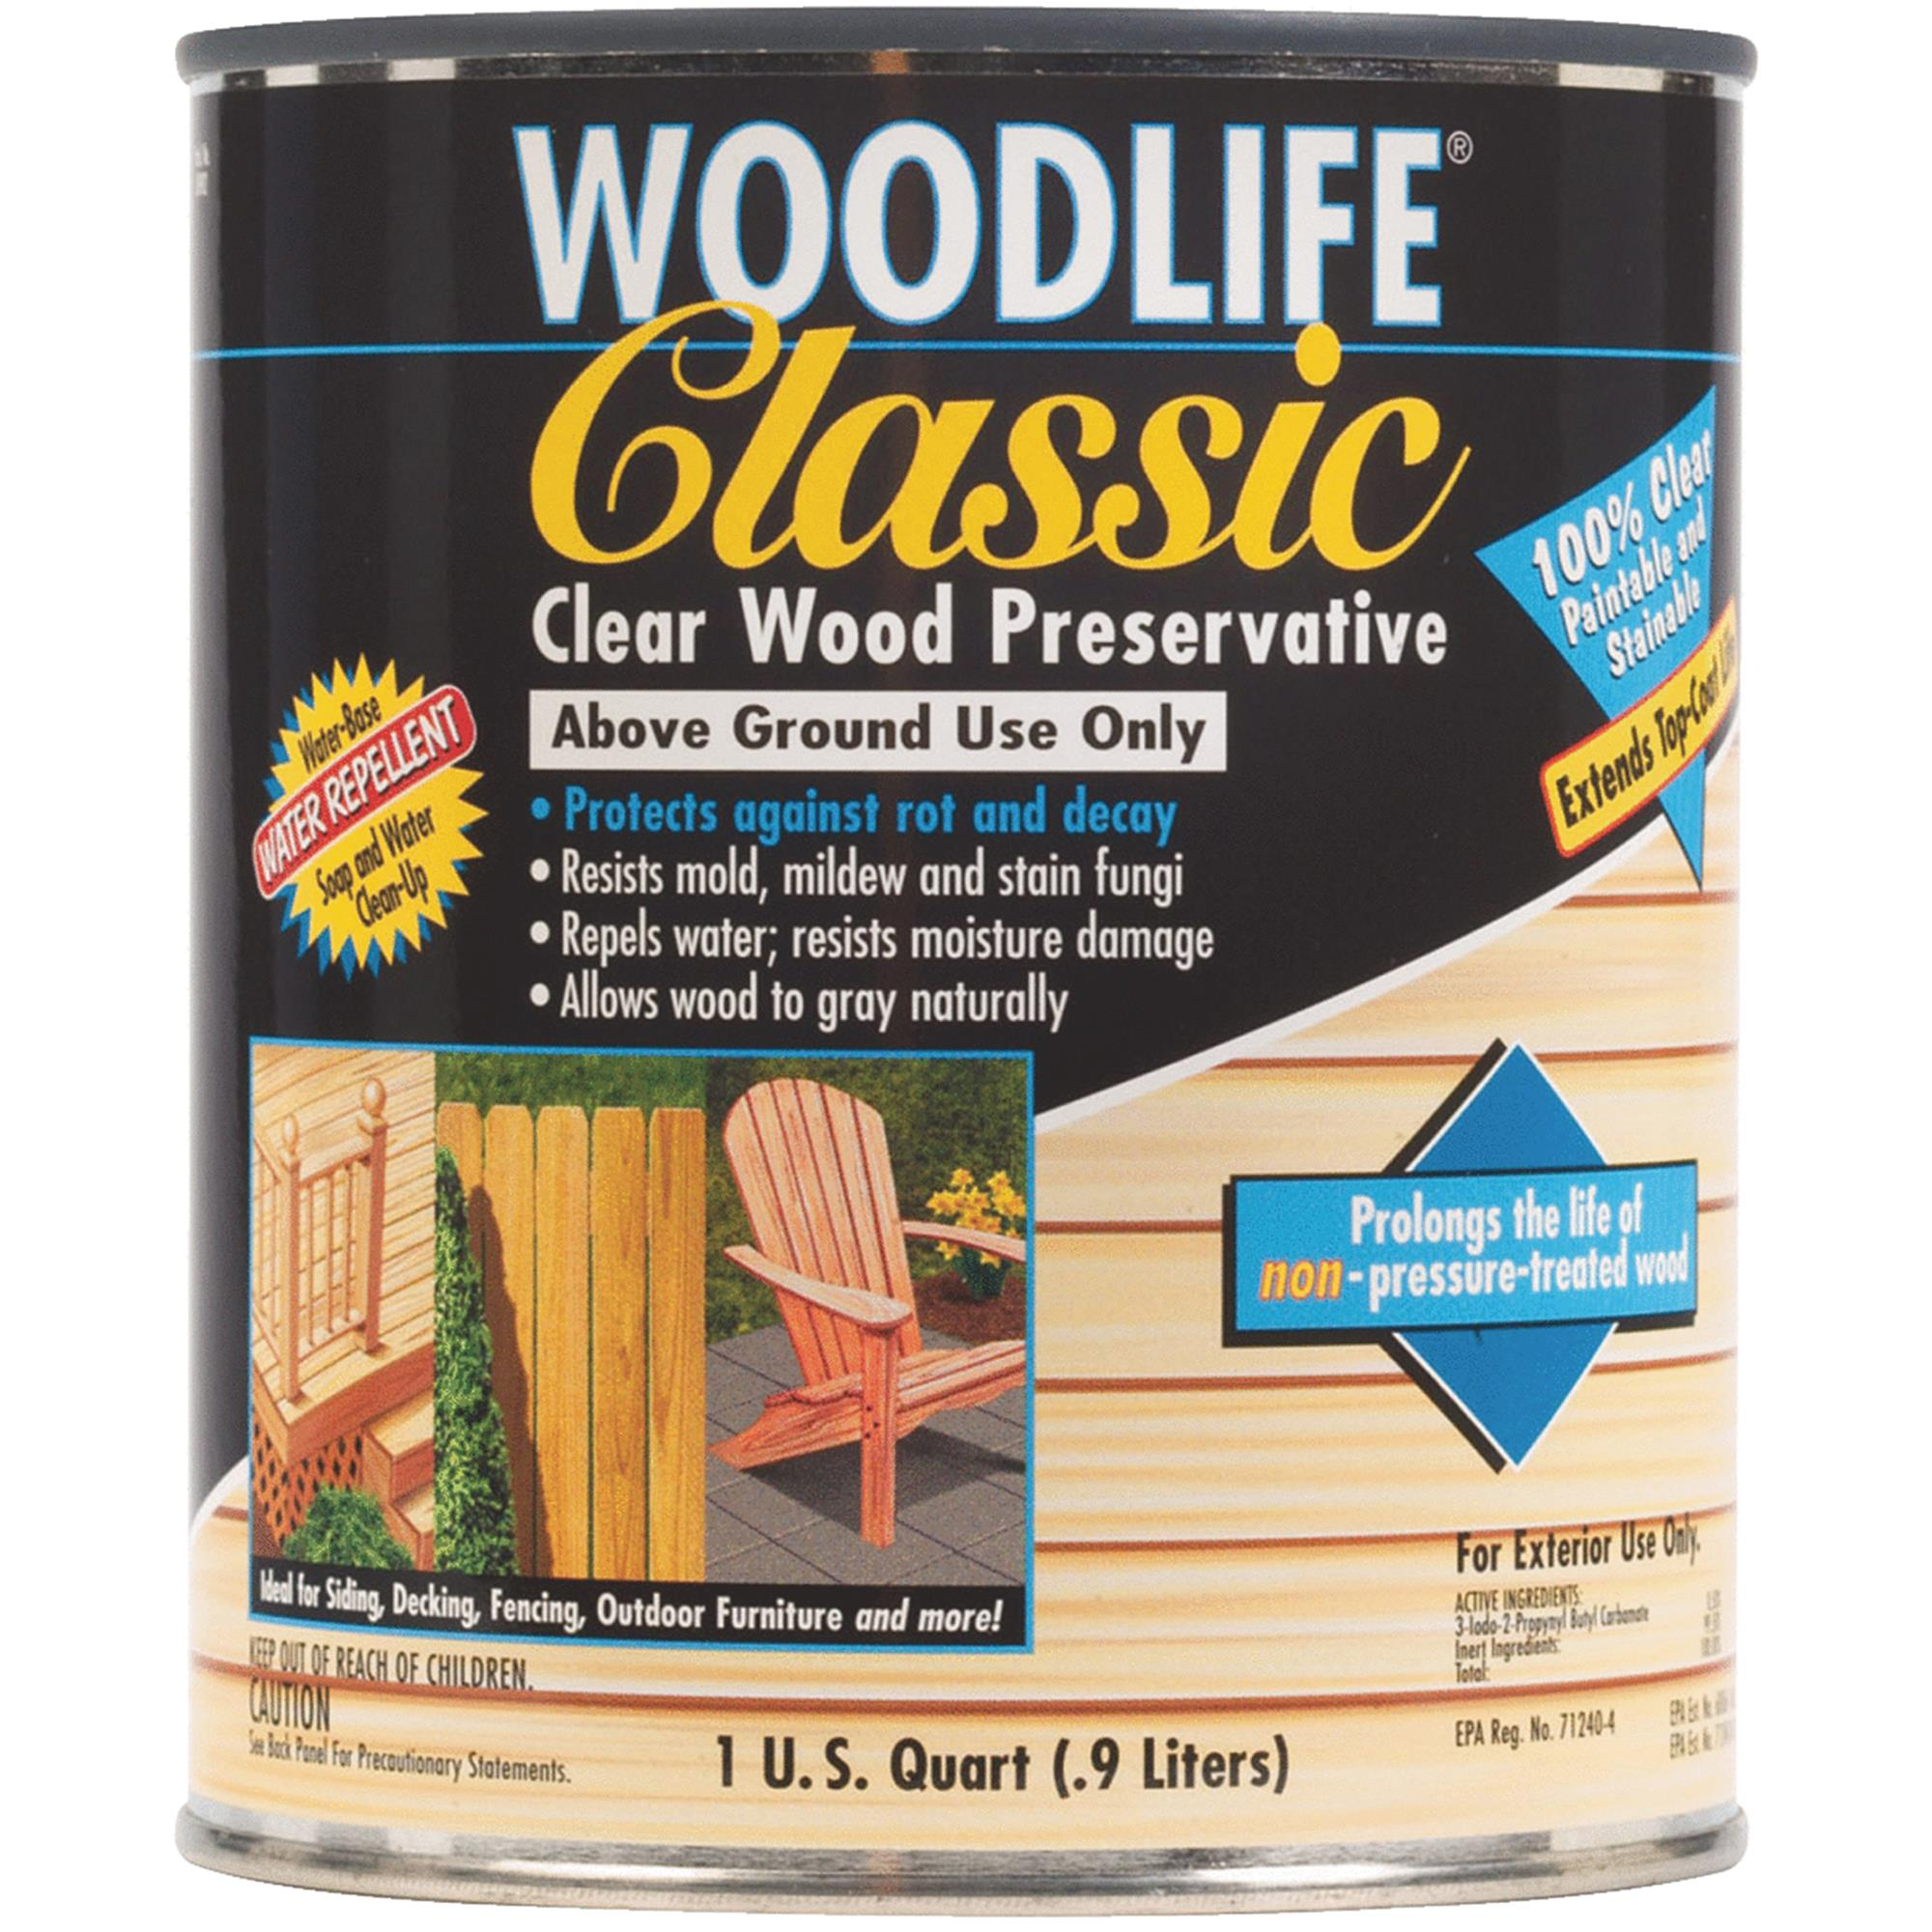 Woodlife Classic Wood Preservative